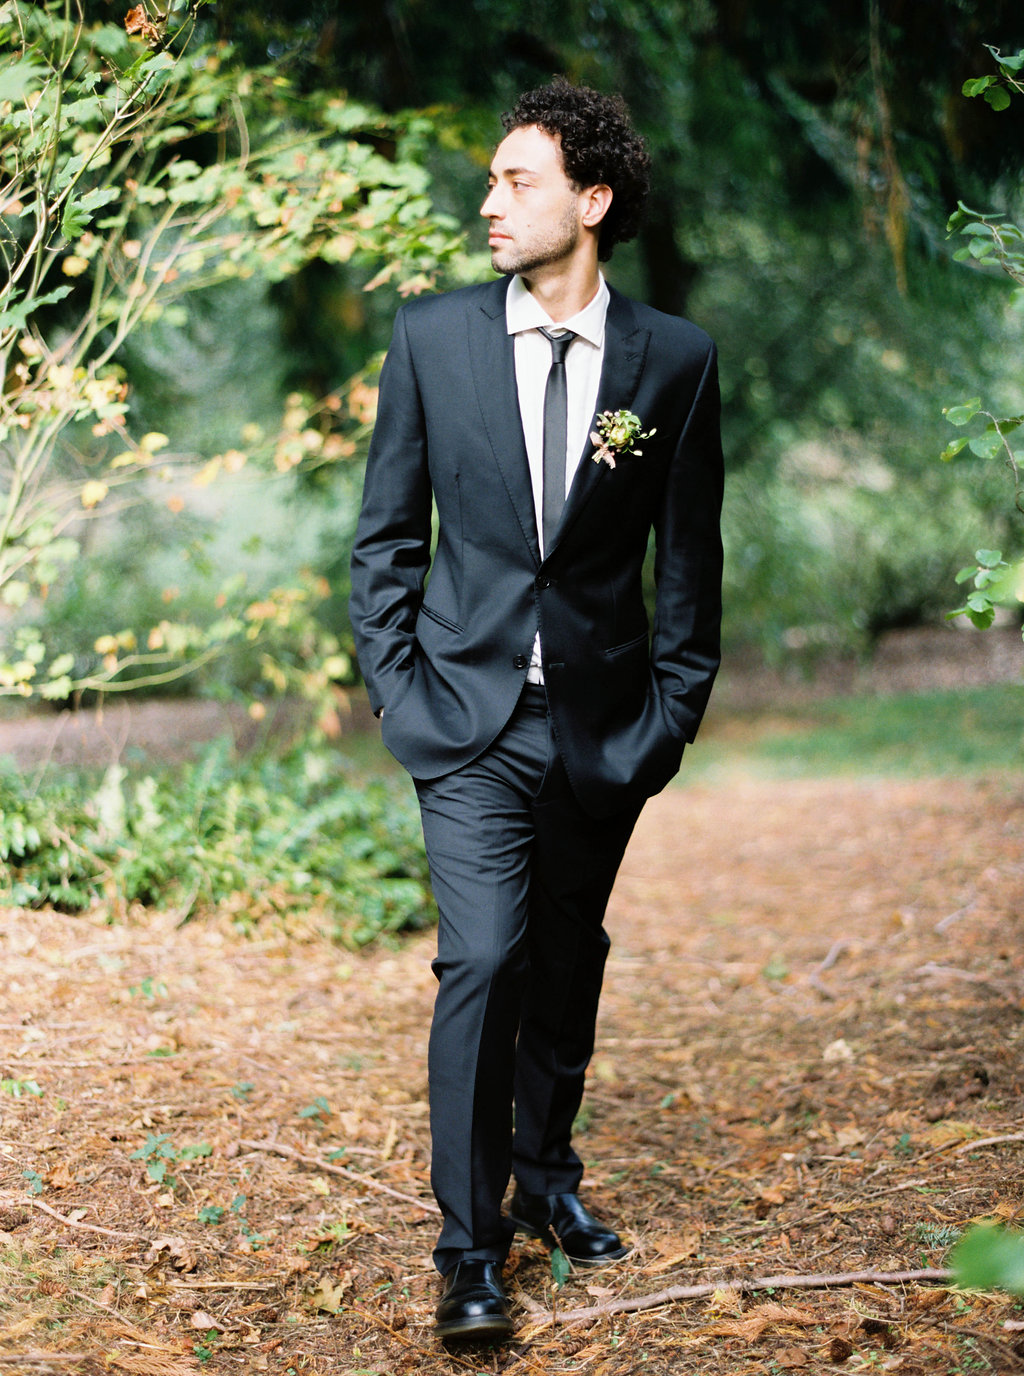 Wedding Wise, Seattle Wedding Planner | 2017 Pantone Color of the Year, Greenery | Sarah Carpenter Photography | Dashing groom wearing suit